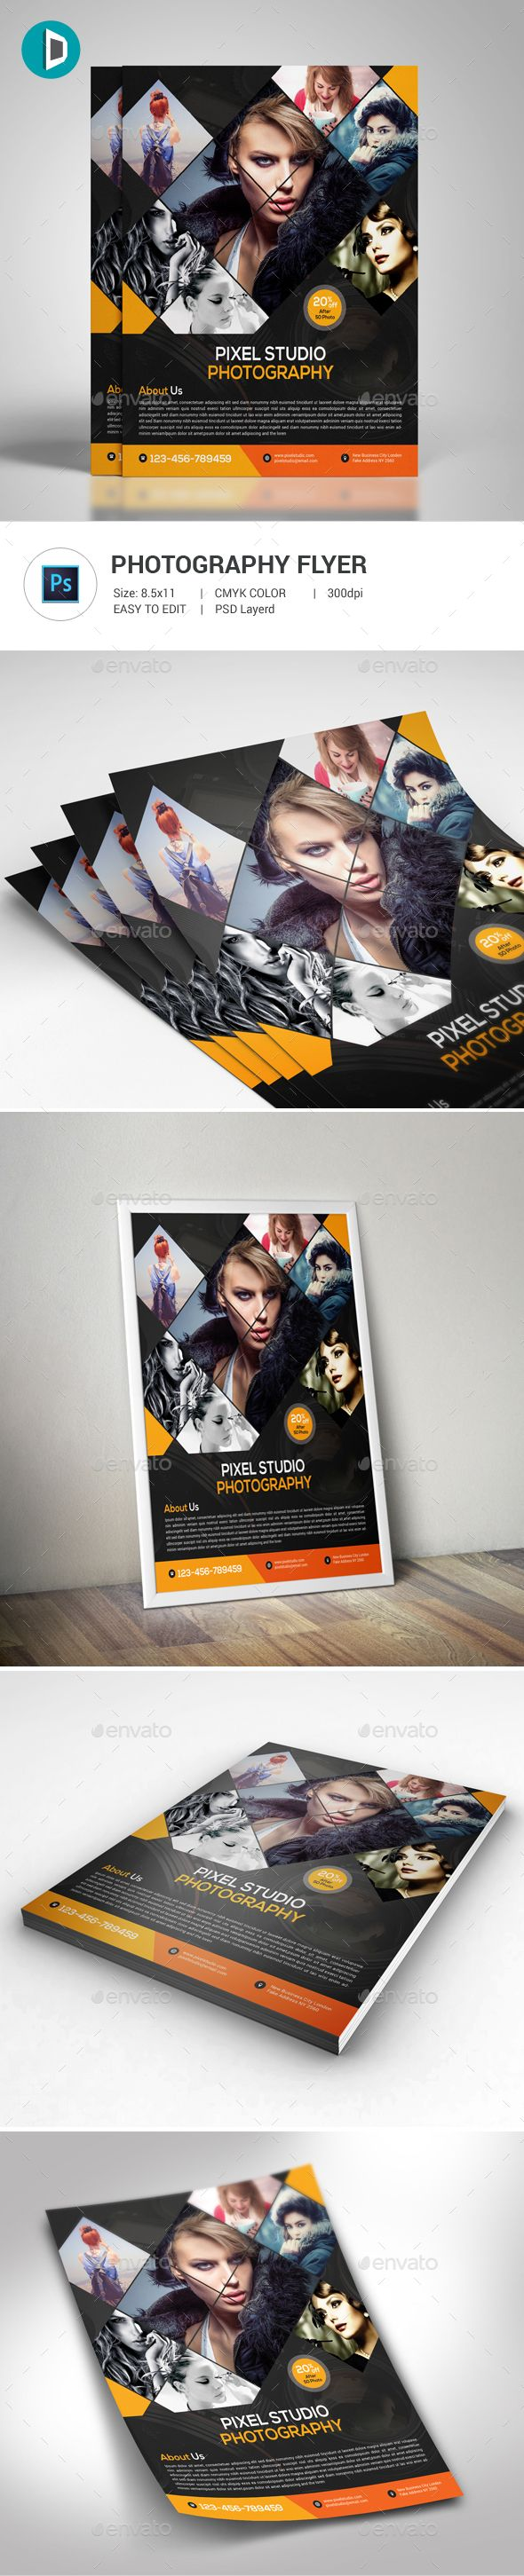 Photography Flyer — Photoshop PSD #corporate #flyer • Available here → https://graphicriver.net/item/photography-flyer/17813768?ref=pxcr